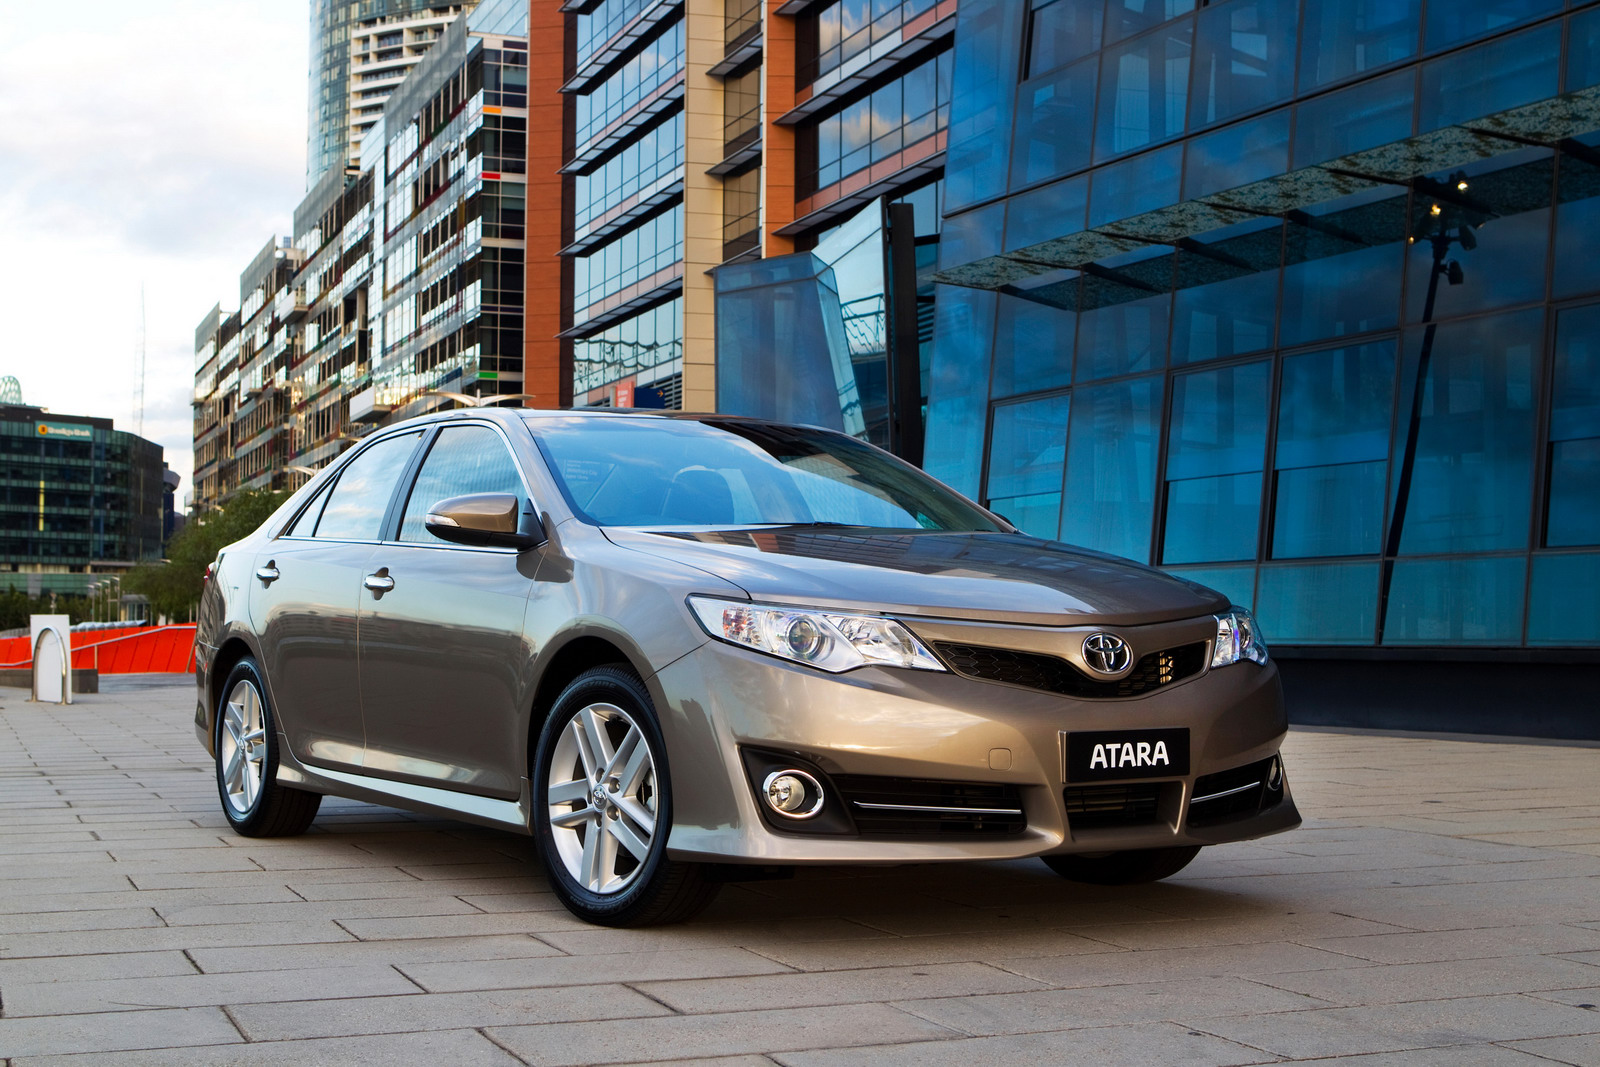 brand new toyota camry price in australia harga grand avanza type e 2015 2012 for unveiled autoevolution